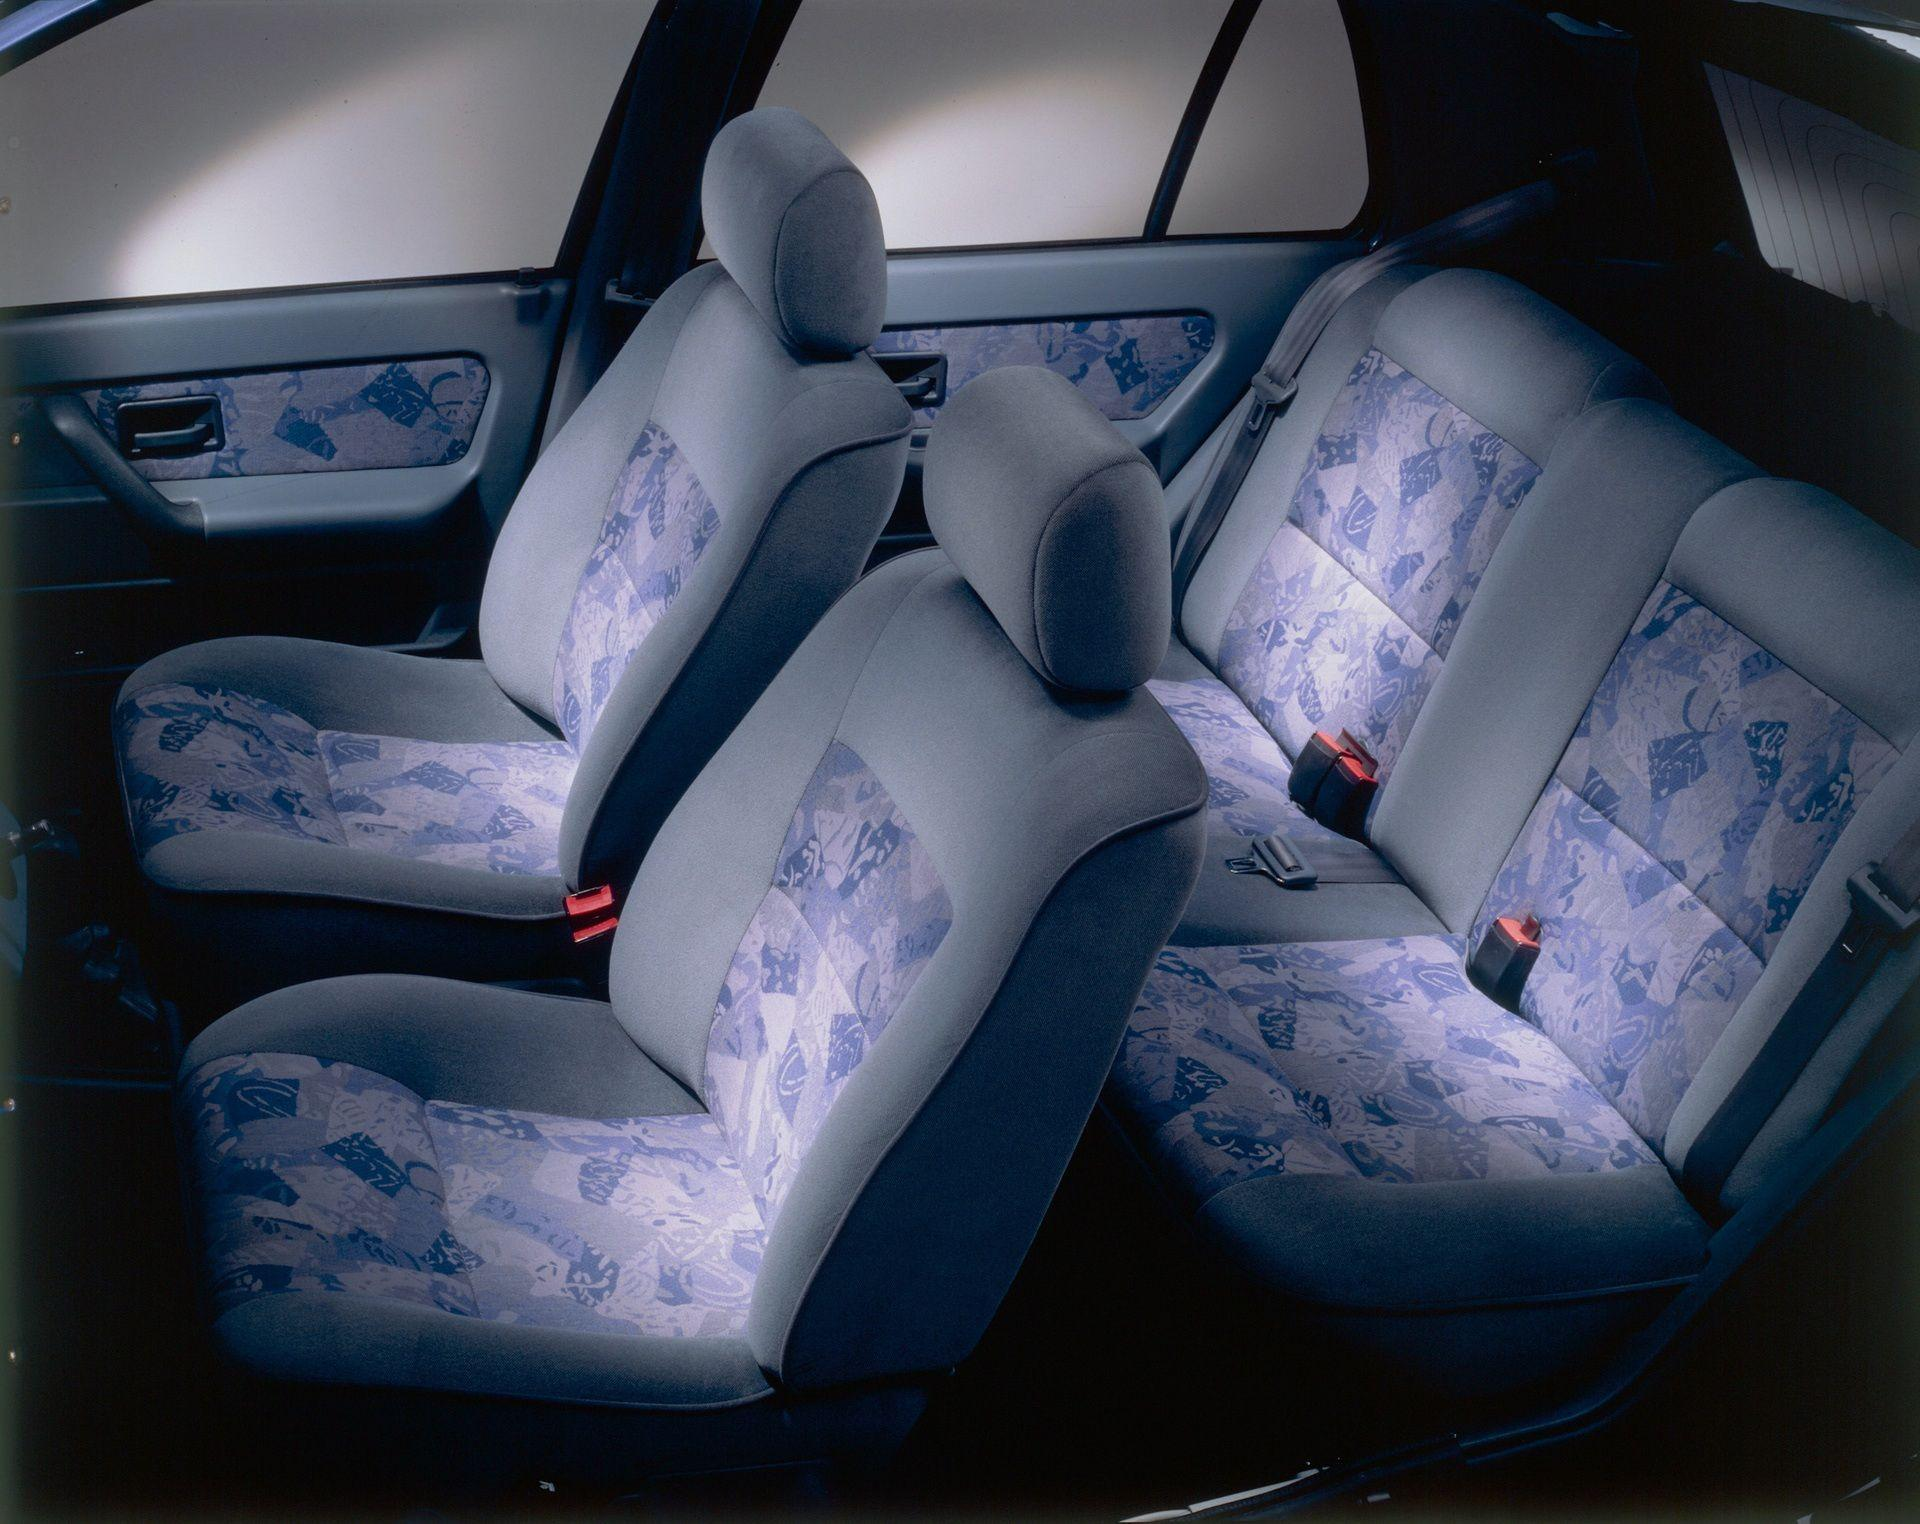 2020-30-years-of-Renault-CLIO-Renault-CLIO-I-1990-1999-17